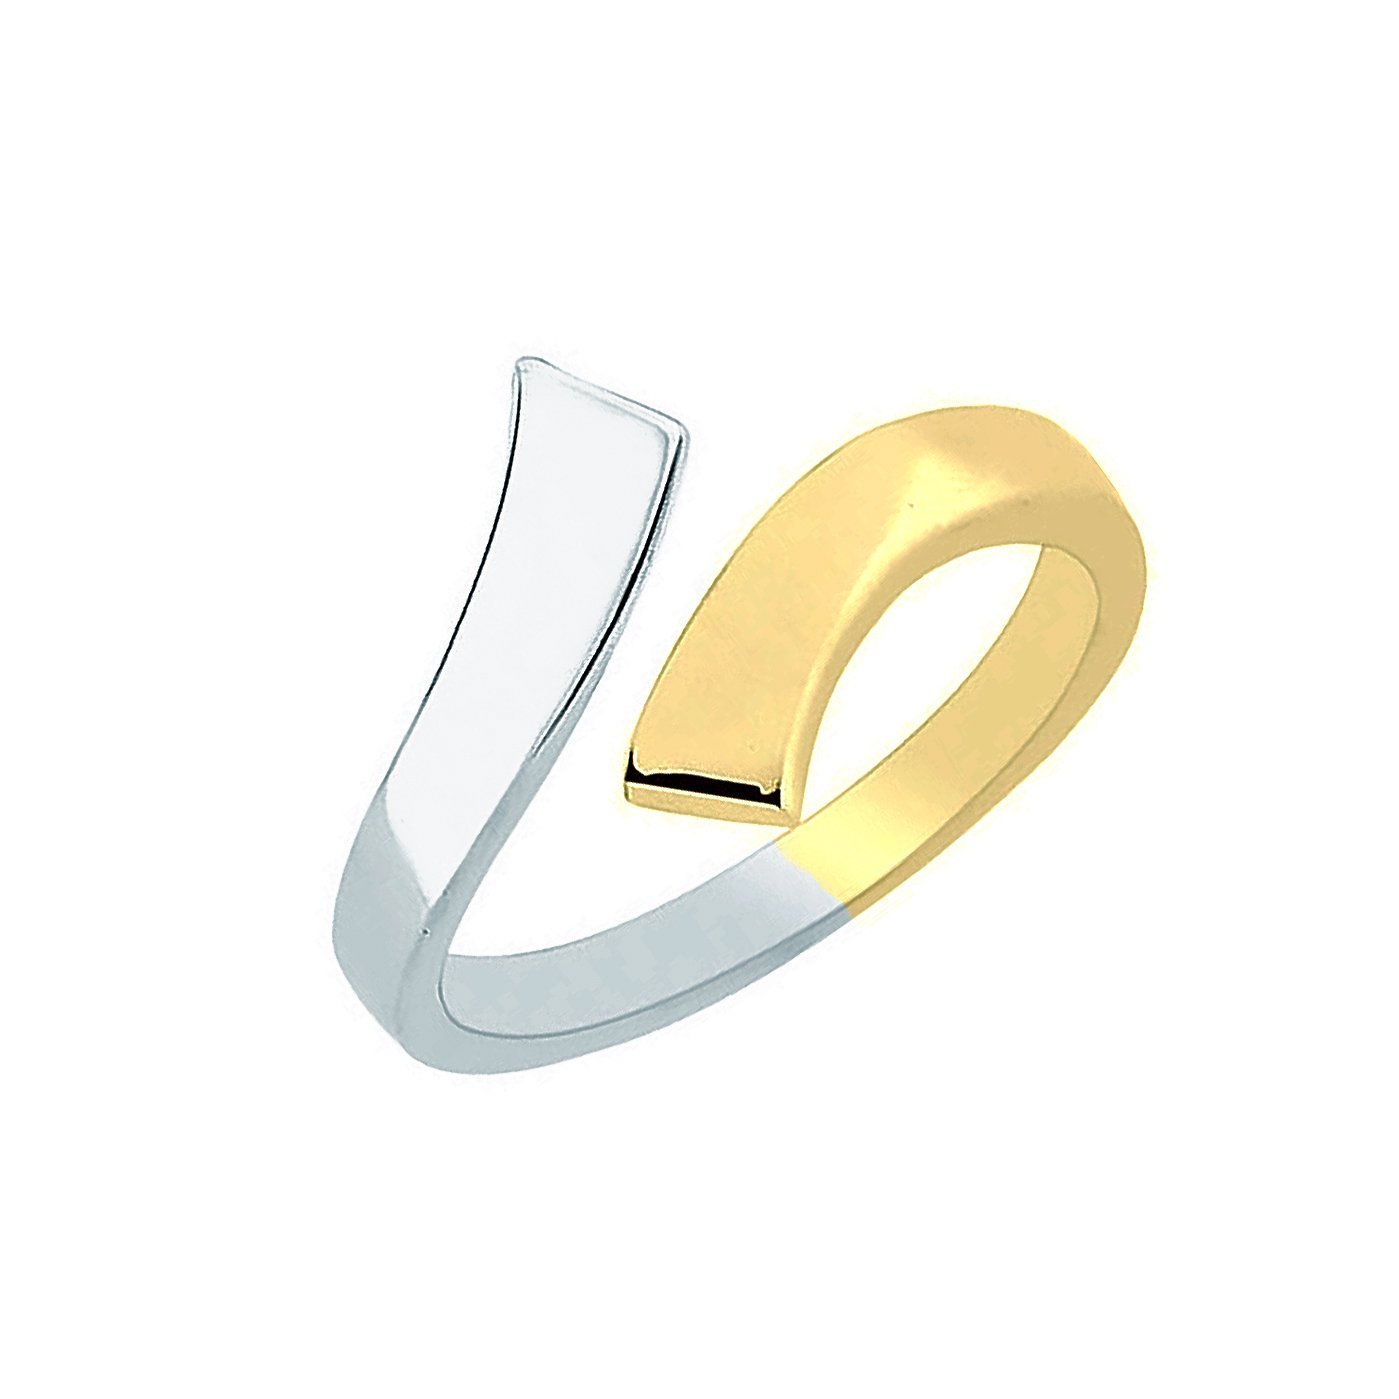 Ritastephens 10K Yellow White Two Tone Gold Crossover Shiny Toe Ring or Ring Body Art Adjustable